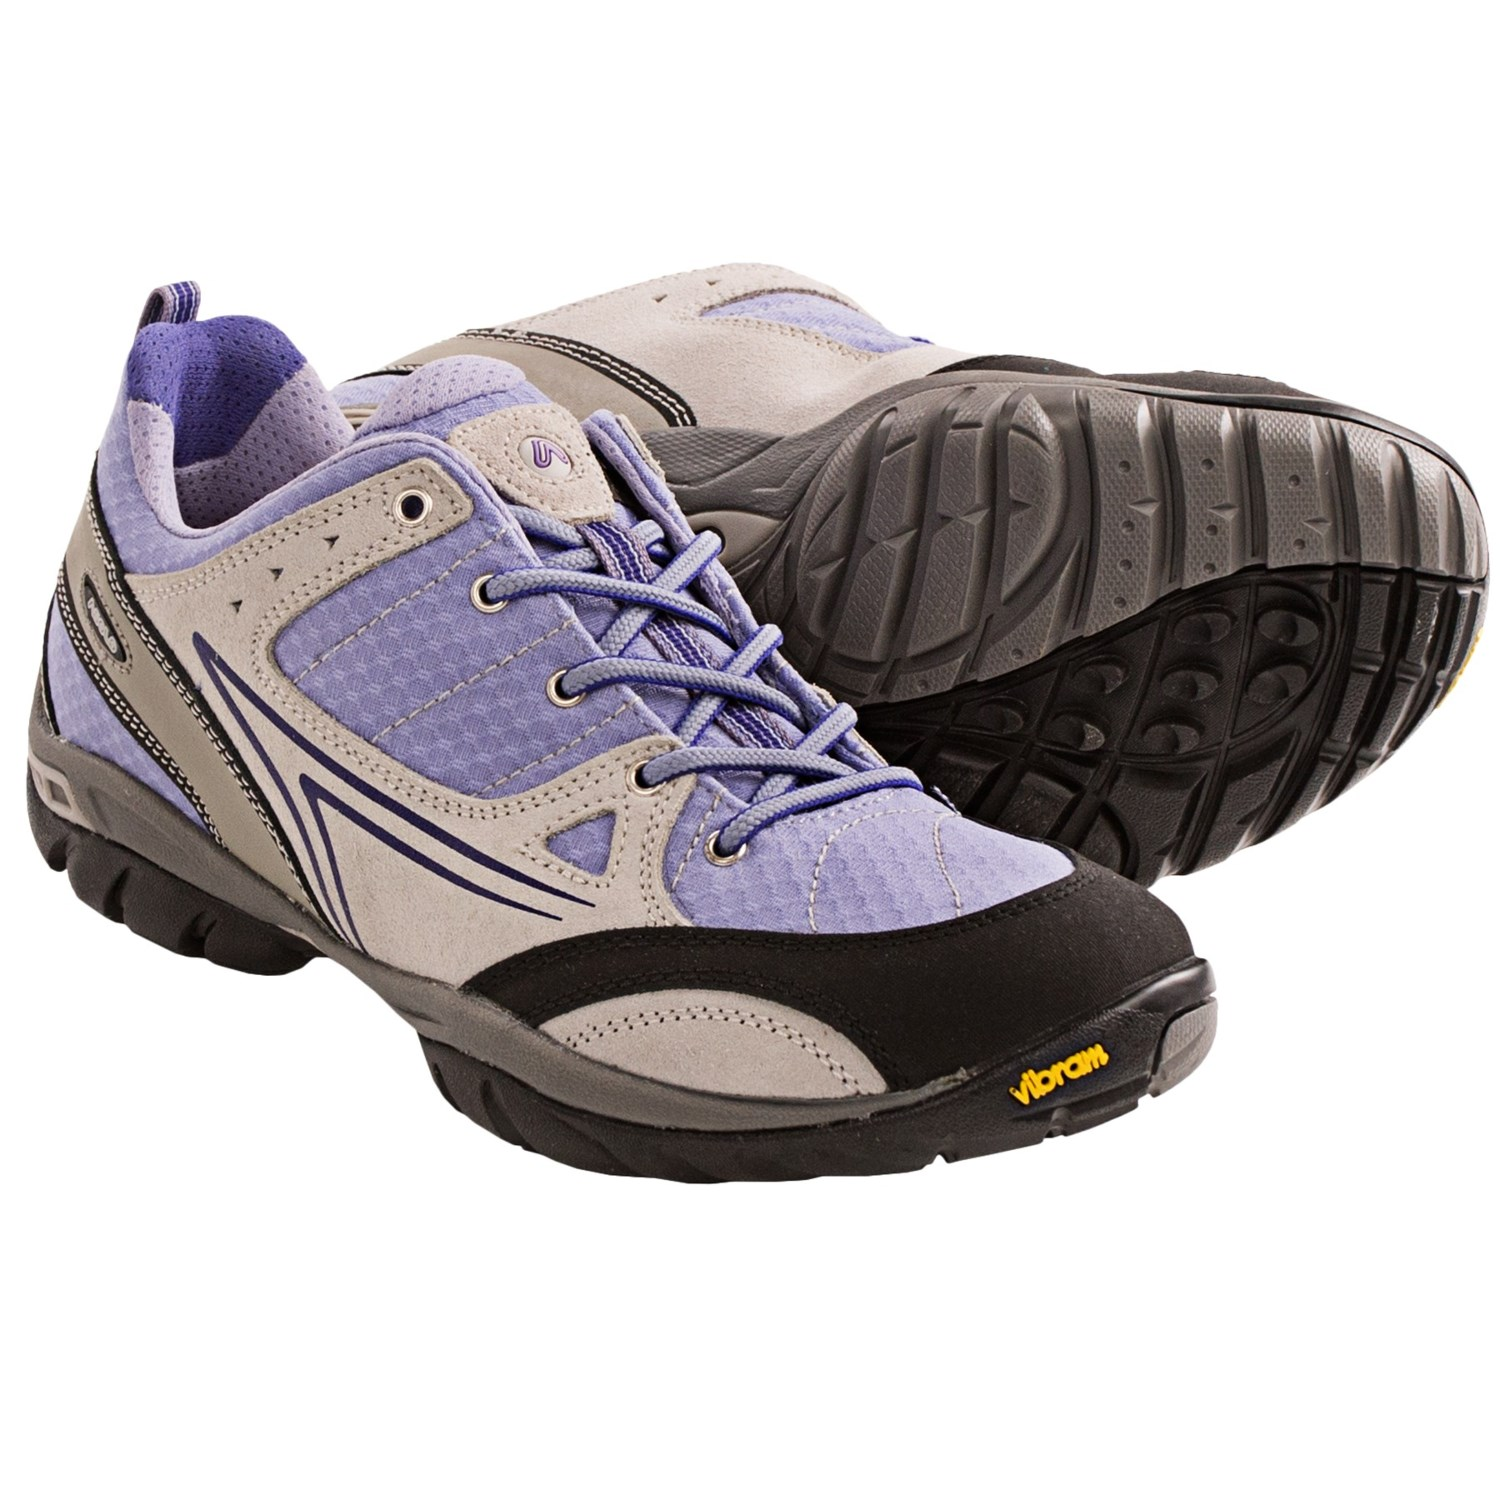 Asolo Dome Hiking Shoes (For Women) in Silver/Cloudy Lillac